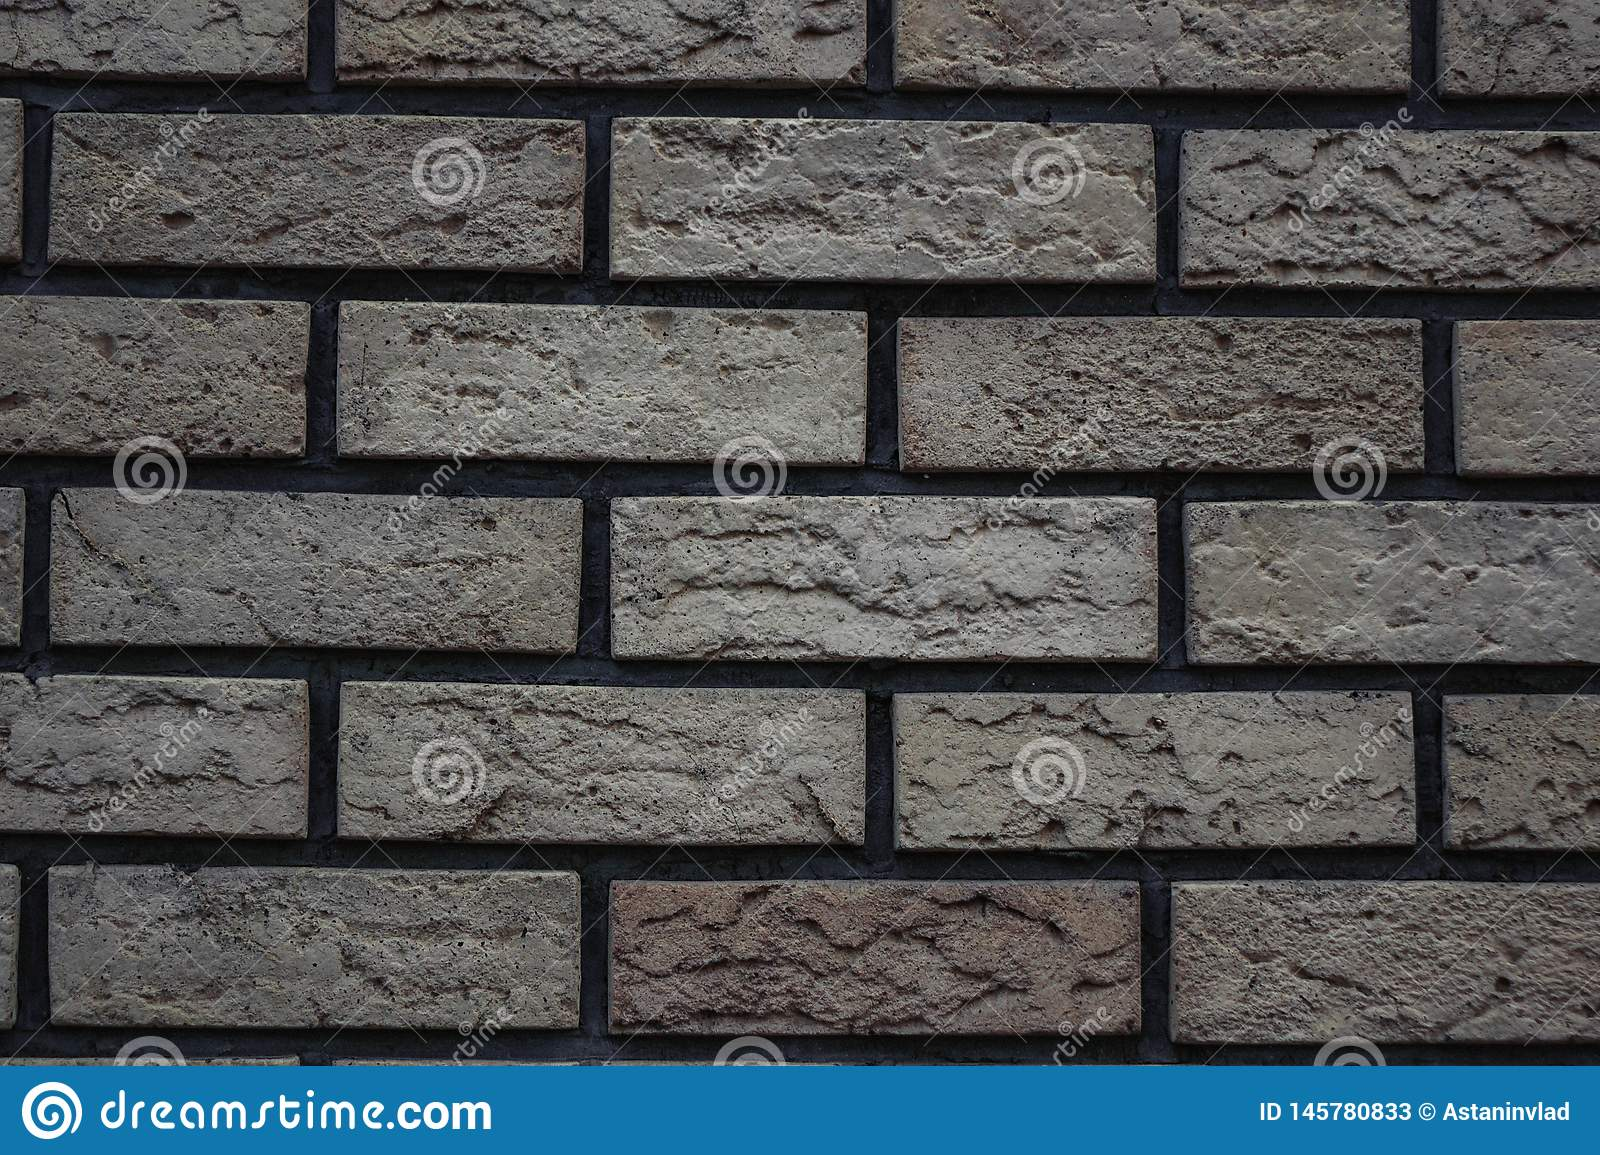 white wall of bricks with a gray tint brick background